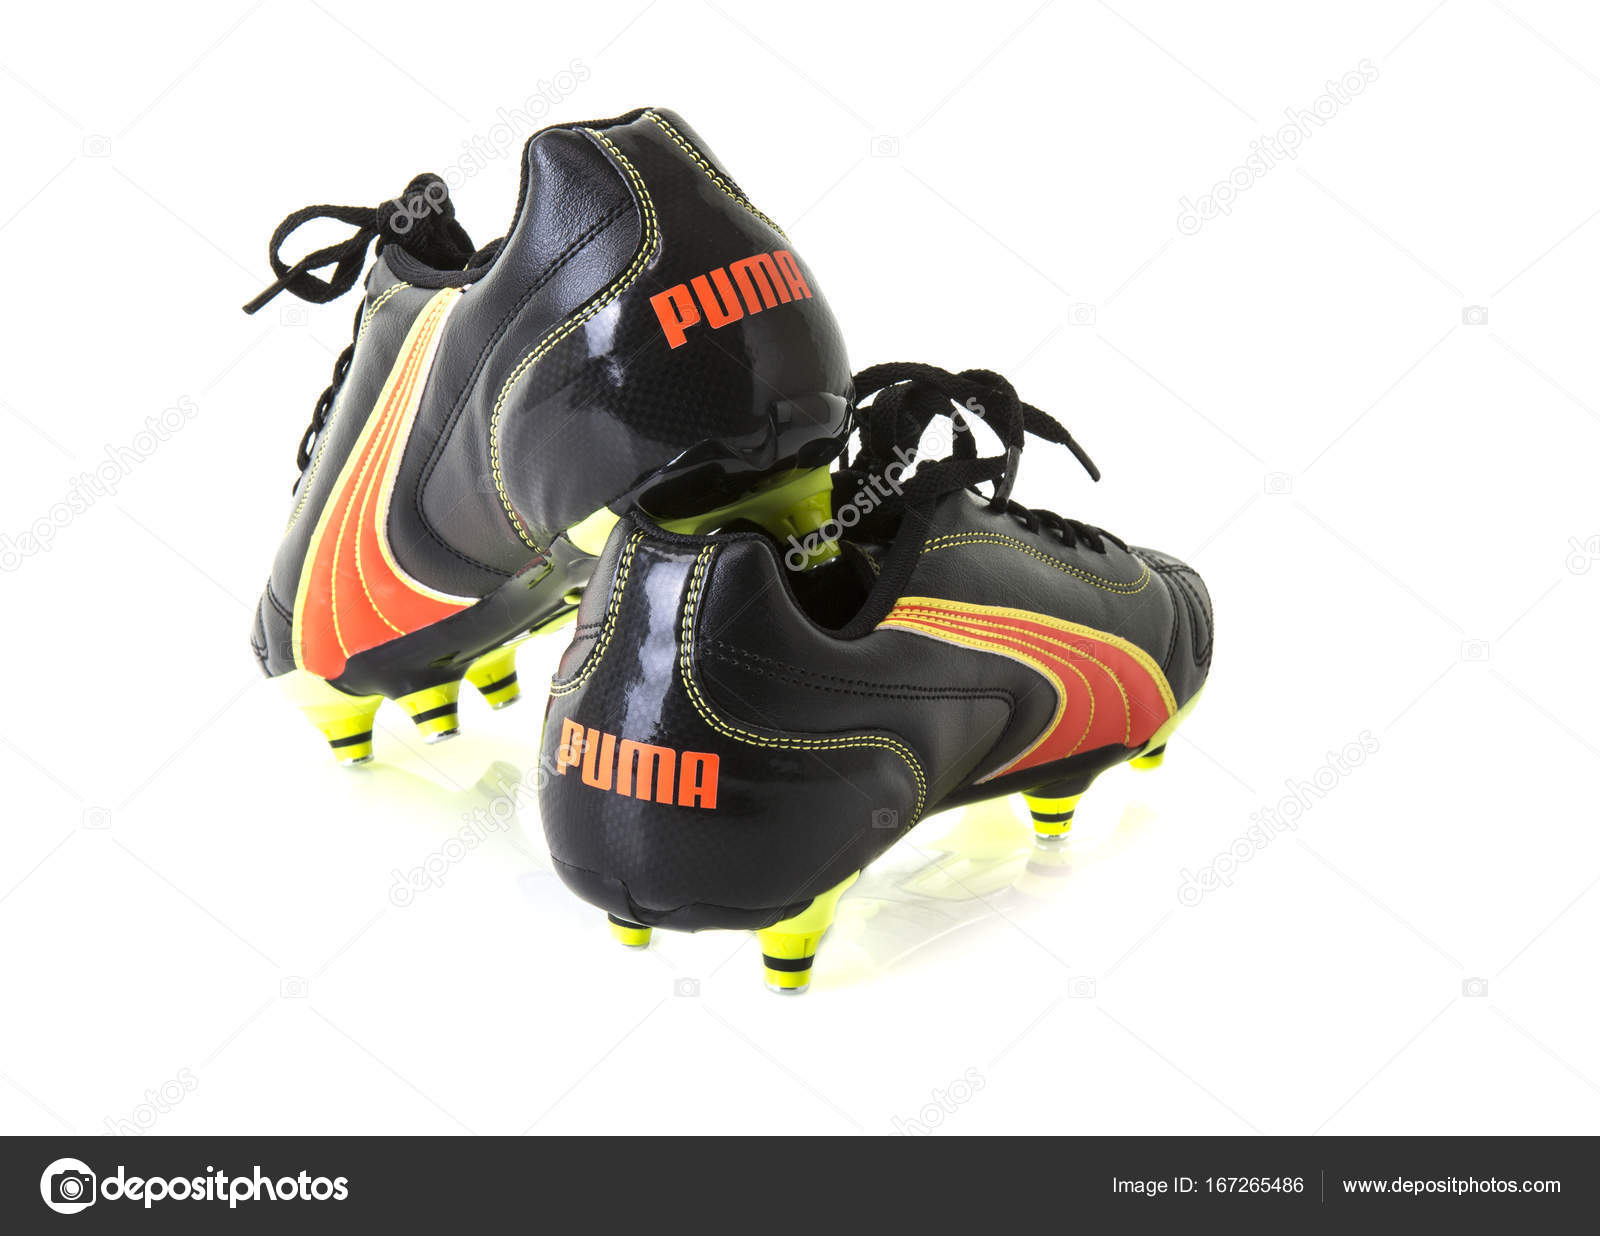 Paire Football De Blanc Sur Puma Chaussures Fond arEaxTUwRq